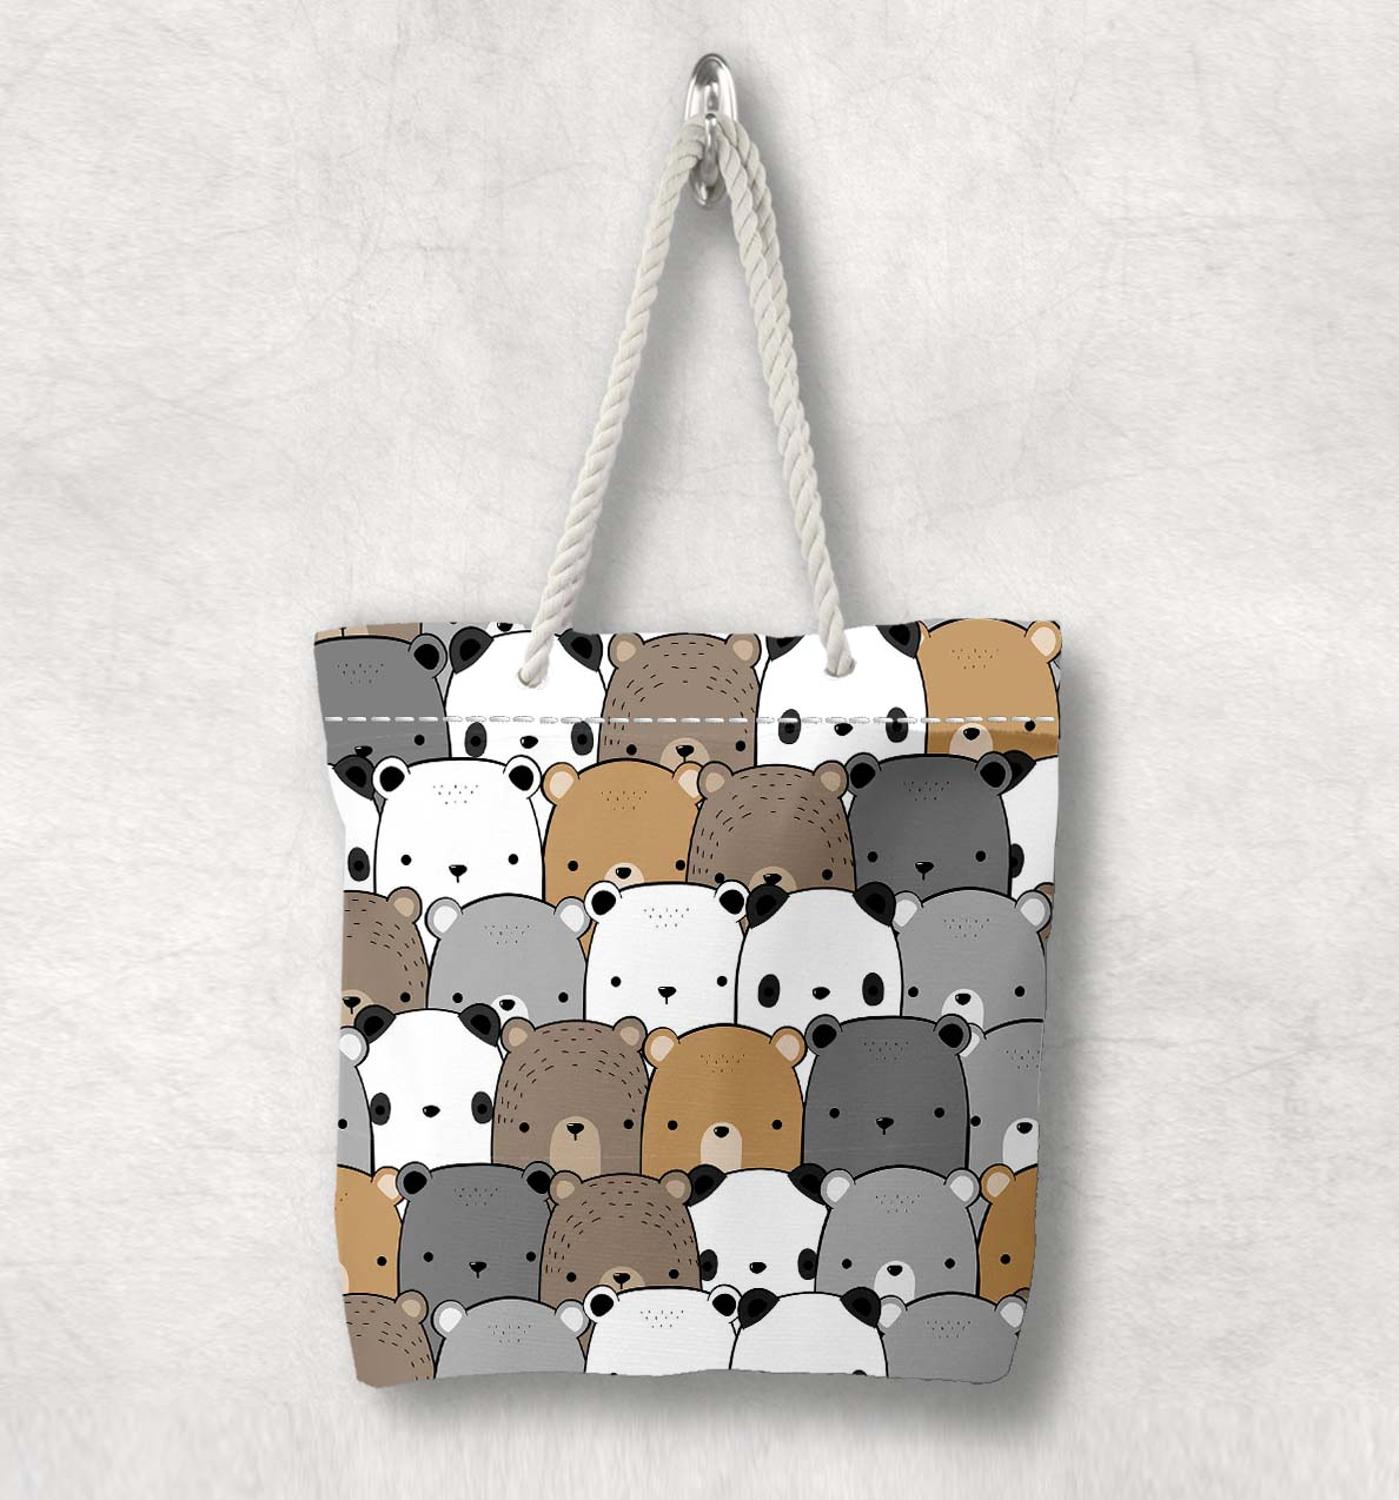 Else Gray Brown White Cute Bears New Fashion White Rope Handle Canvas Bag Cotton Canvas Zippered Tote Bag Shoulder Bag